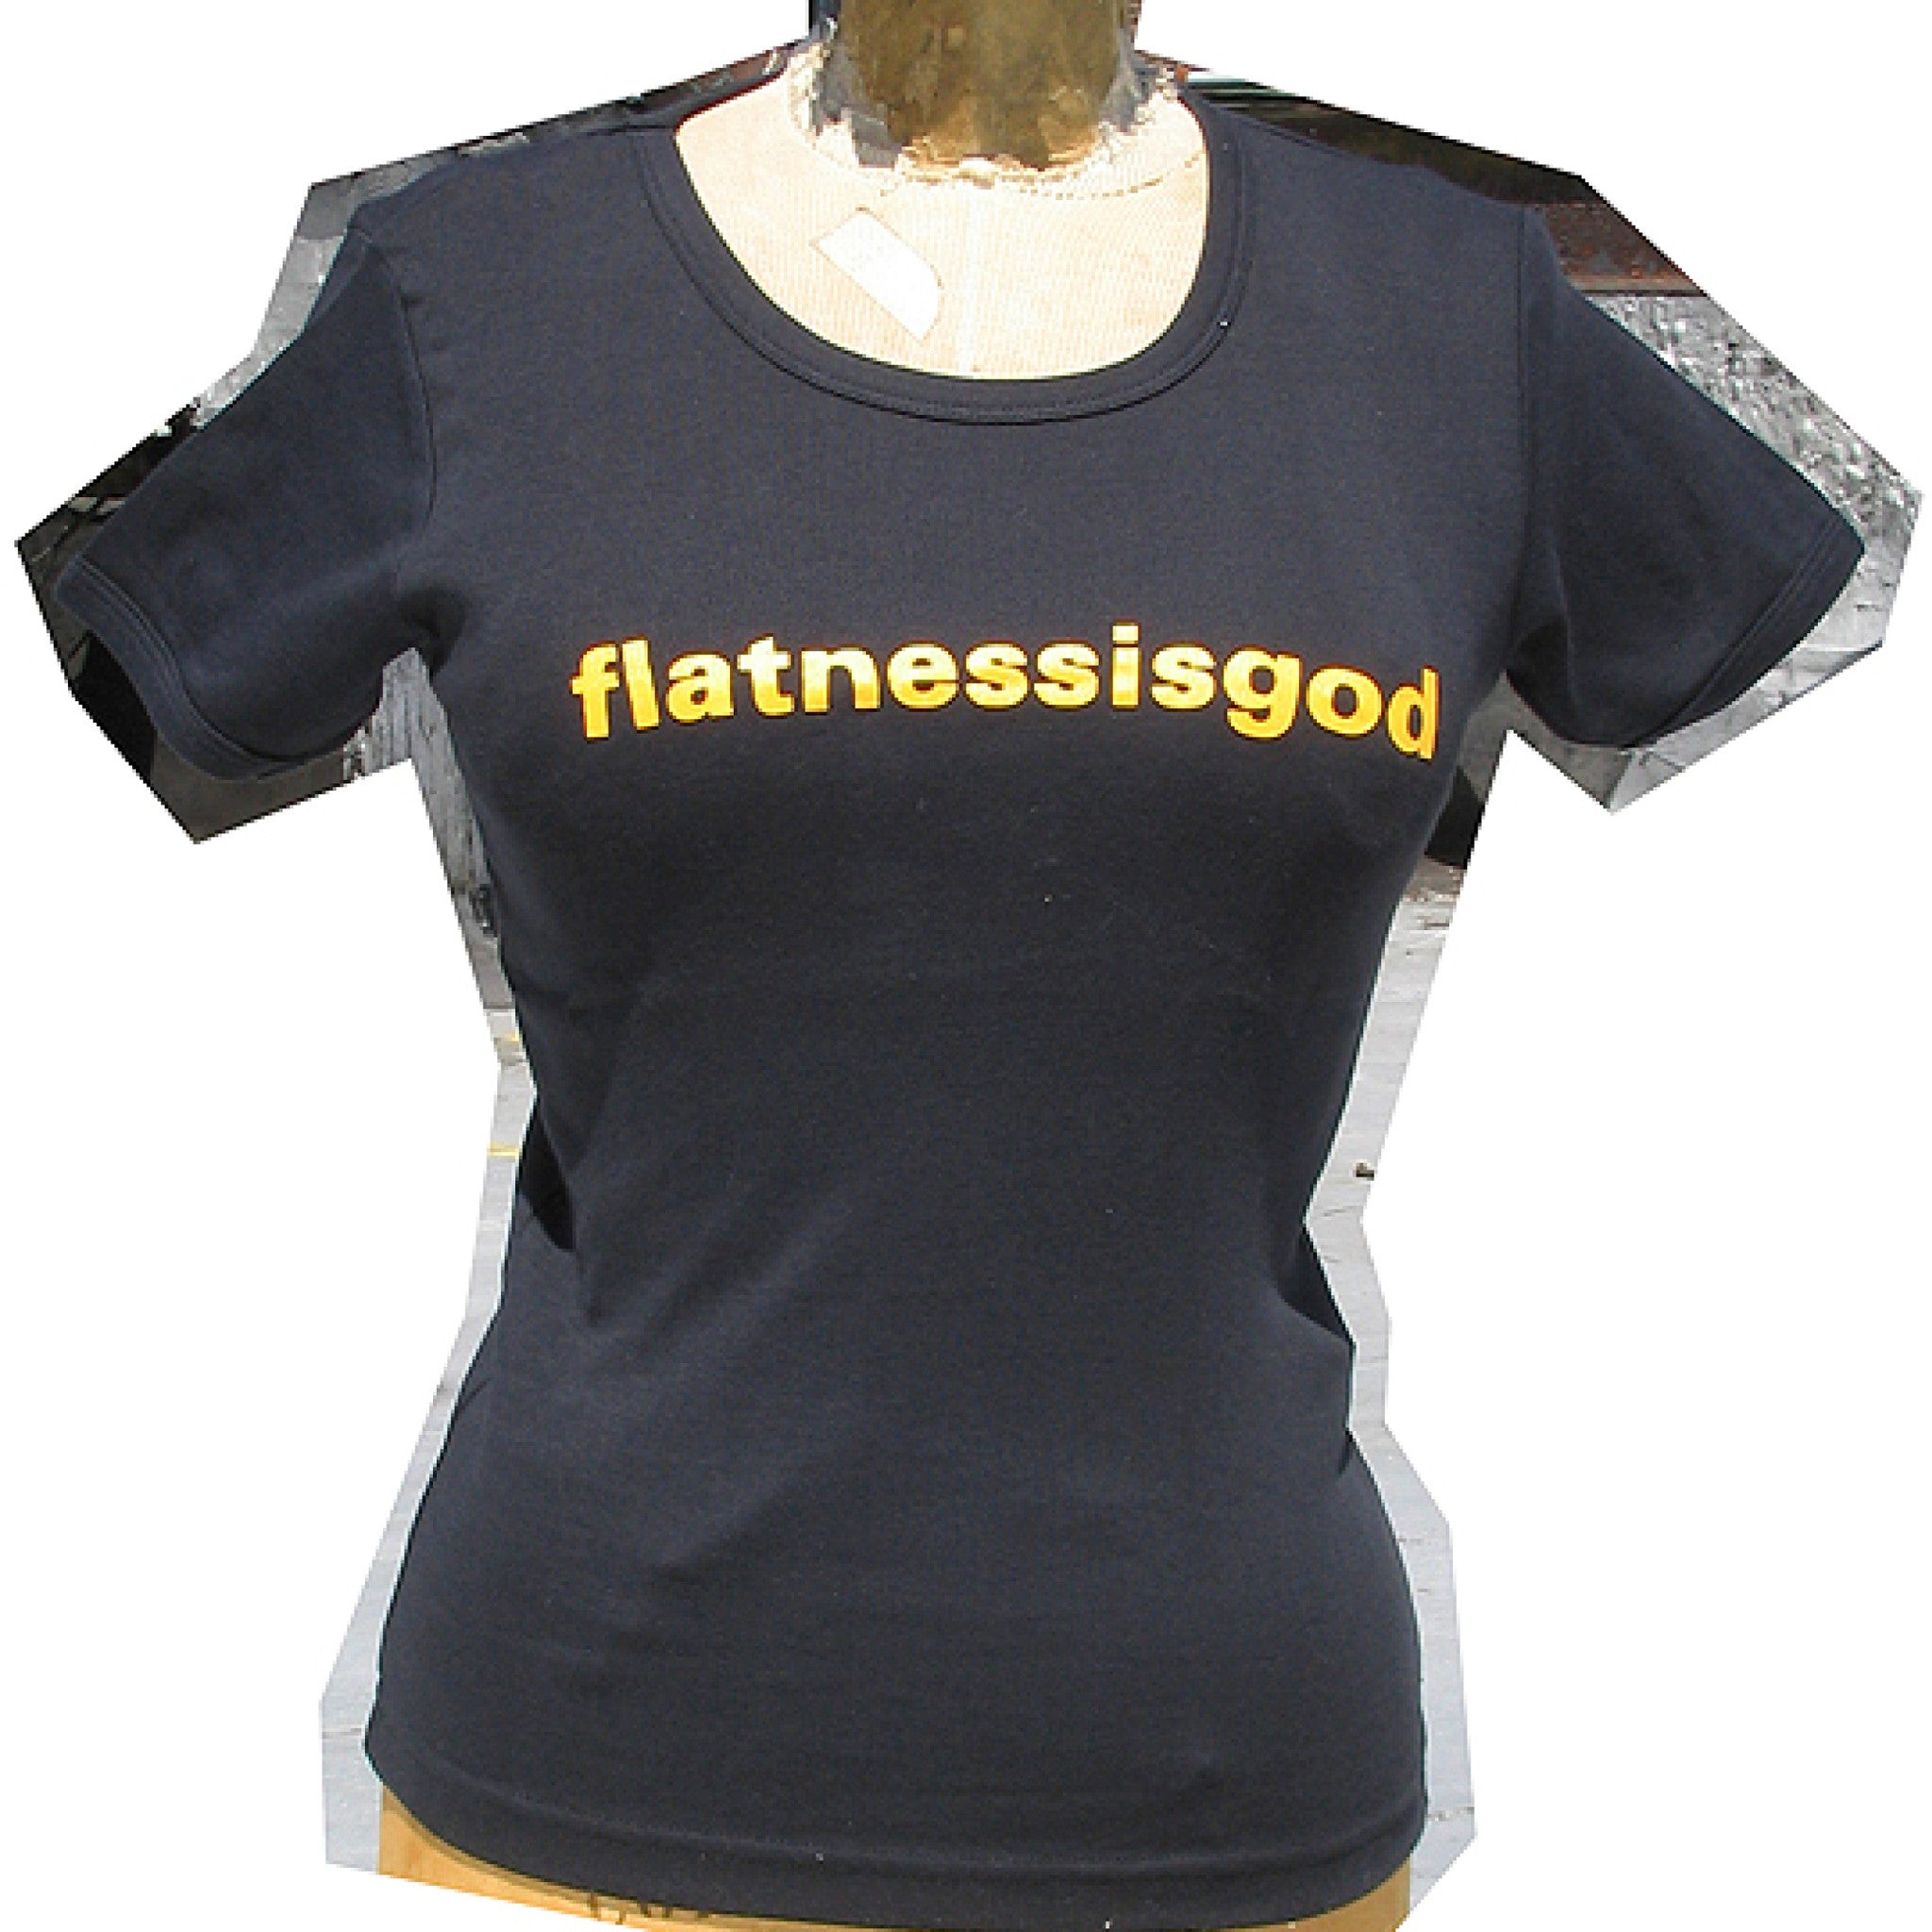 Flatnessisgod T-shirt <br> SOLD OUT